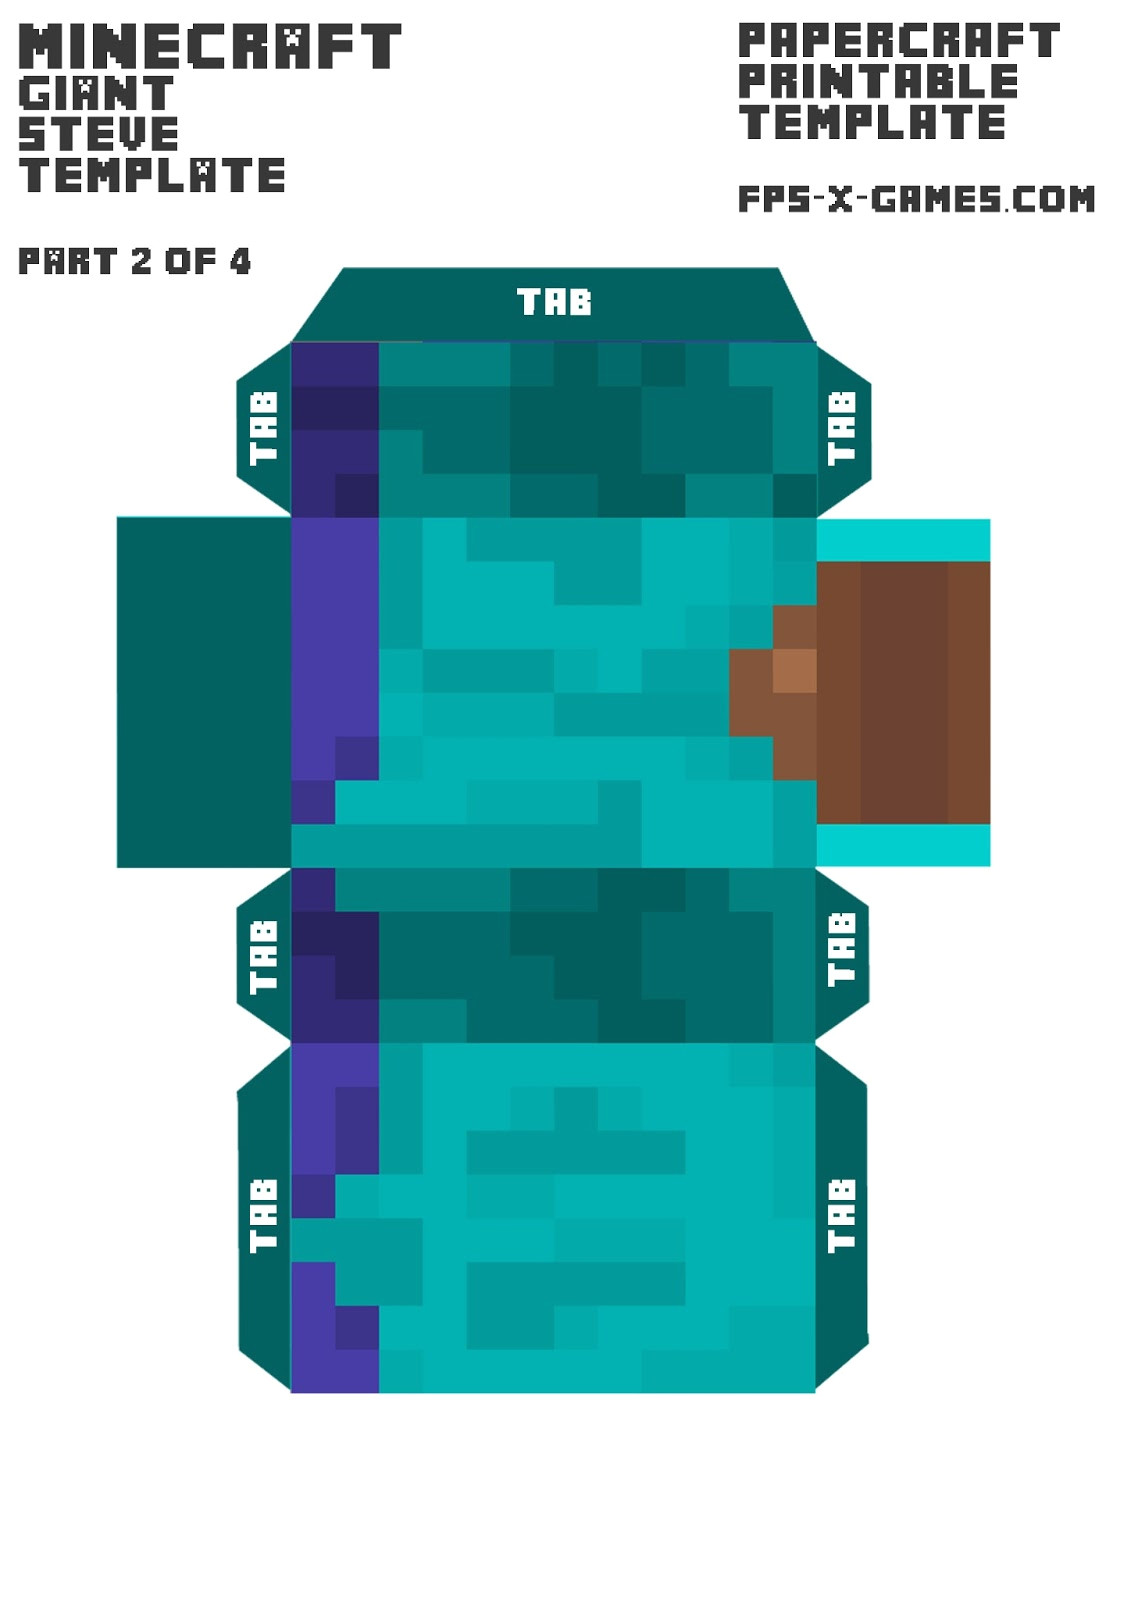 Minecraft Steve Paper Template Minecraft Giant Steve Body Template 2 4 Paper Model